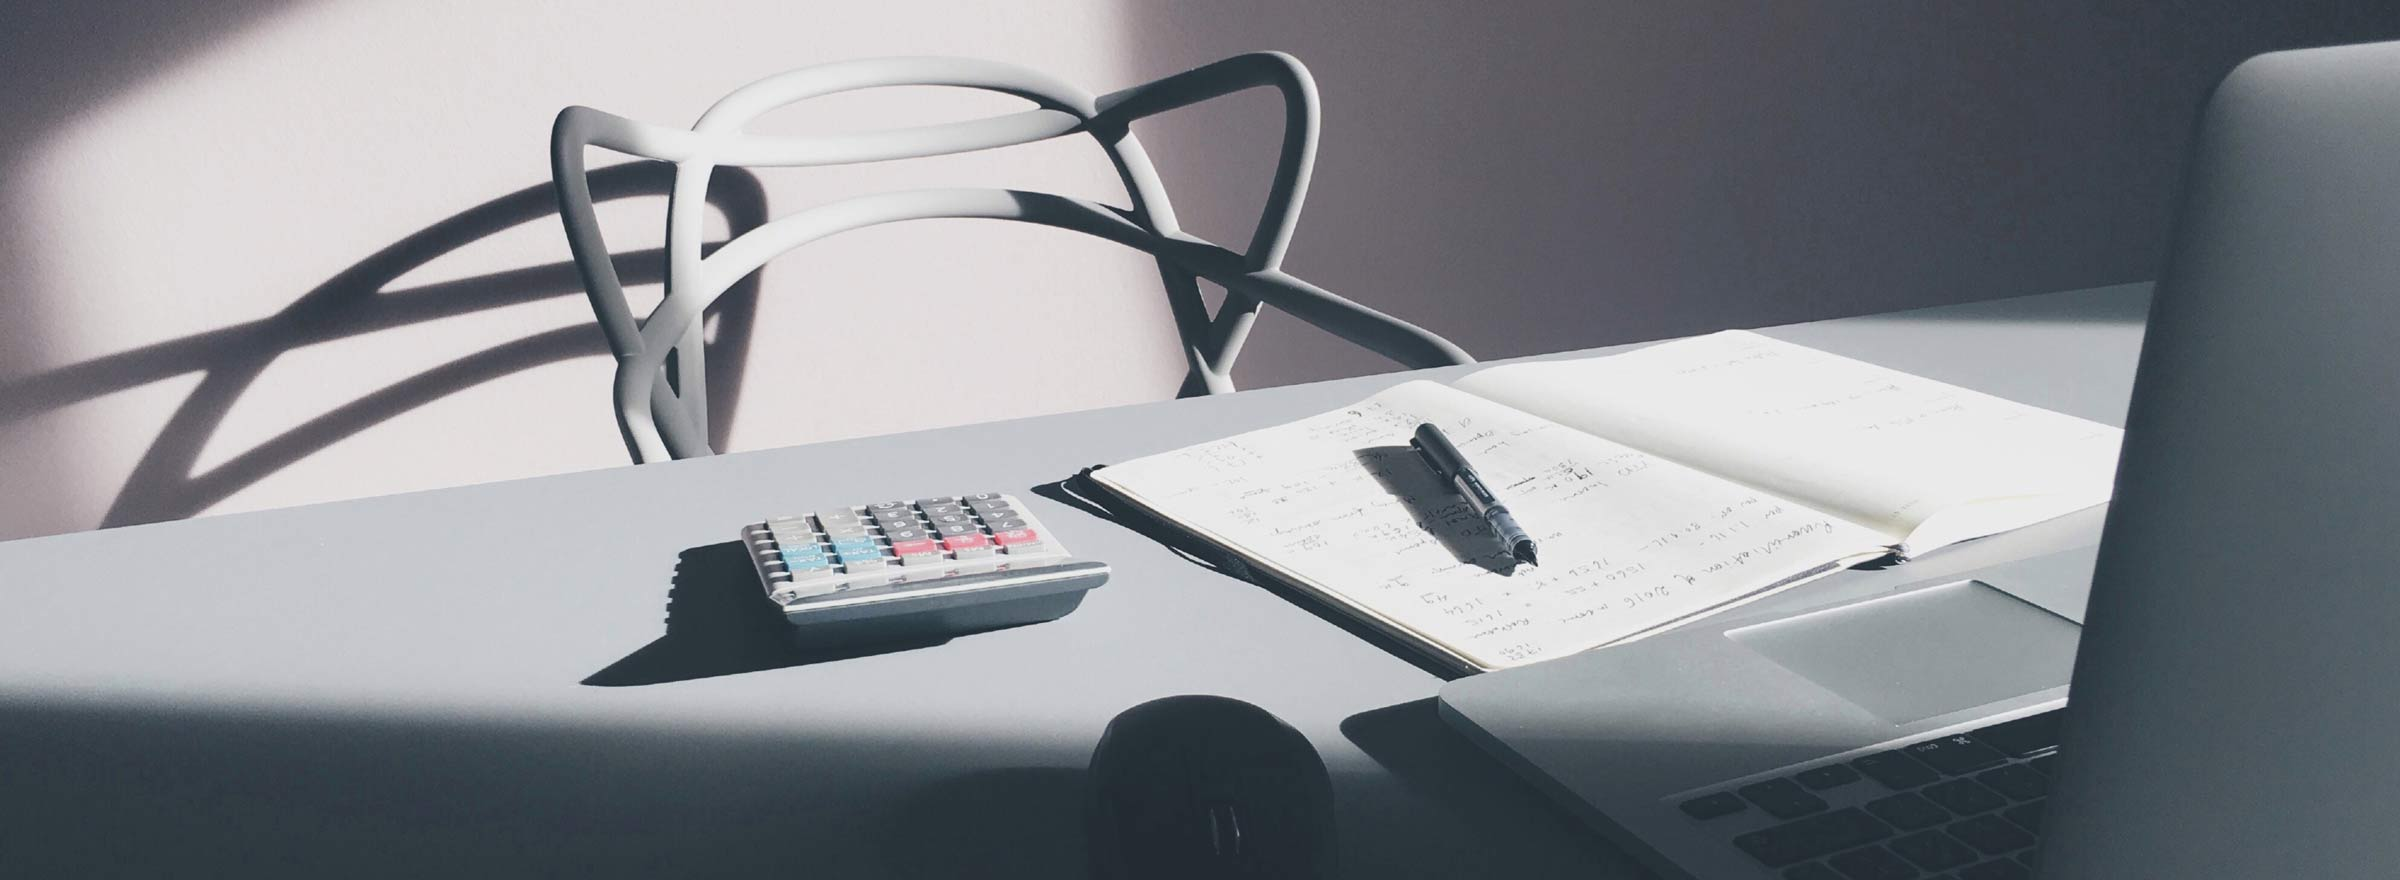 nonprofit accounting tools: a laptop, an open notebook, a pen, and a calculator on a desk in front of a curved chair